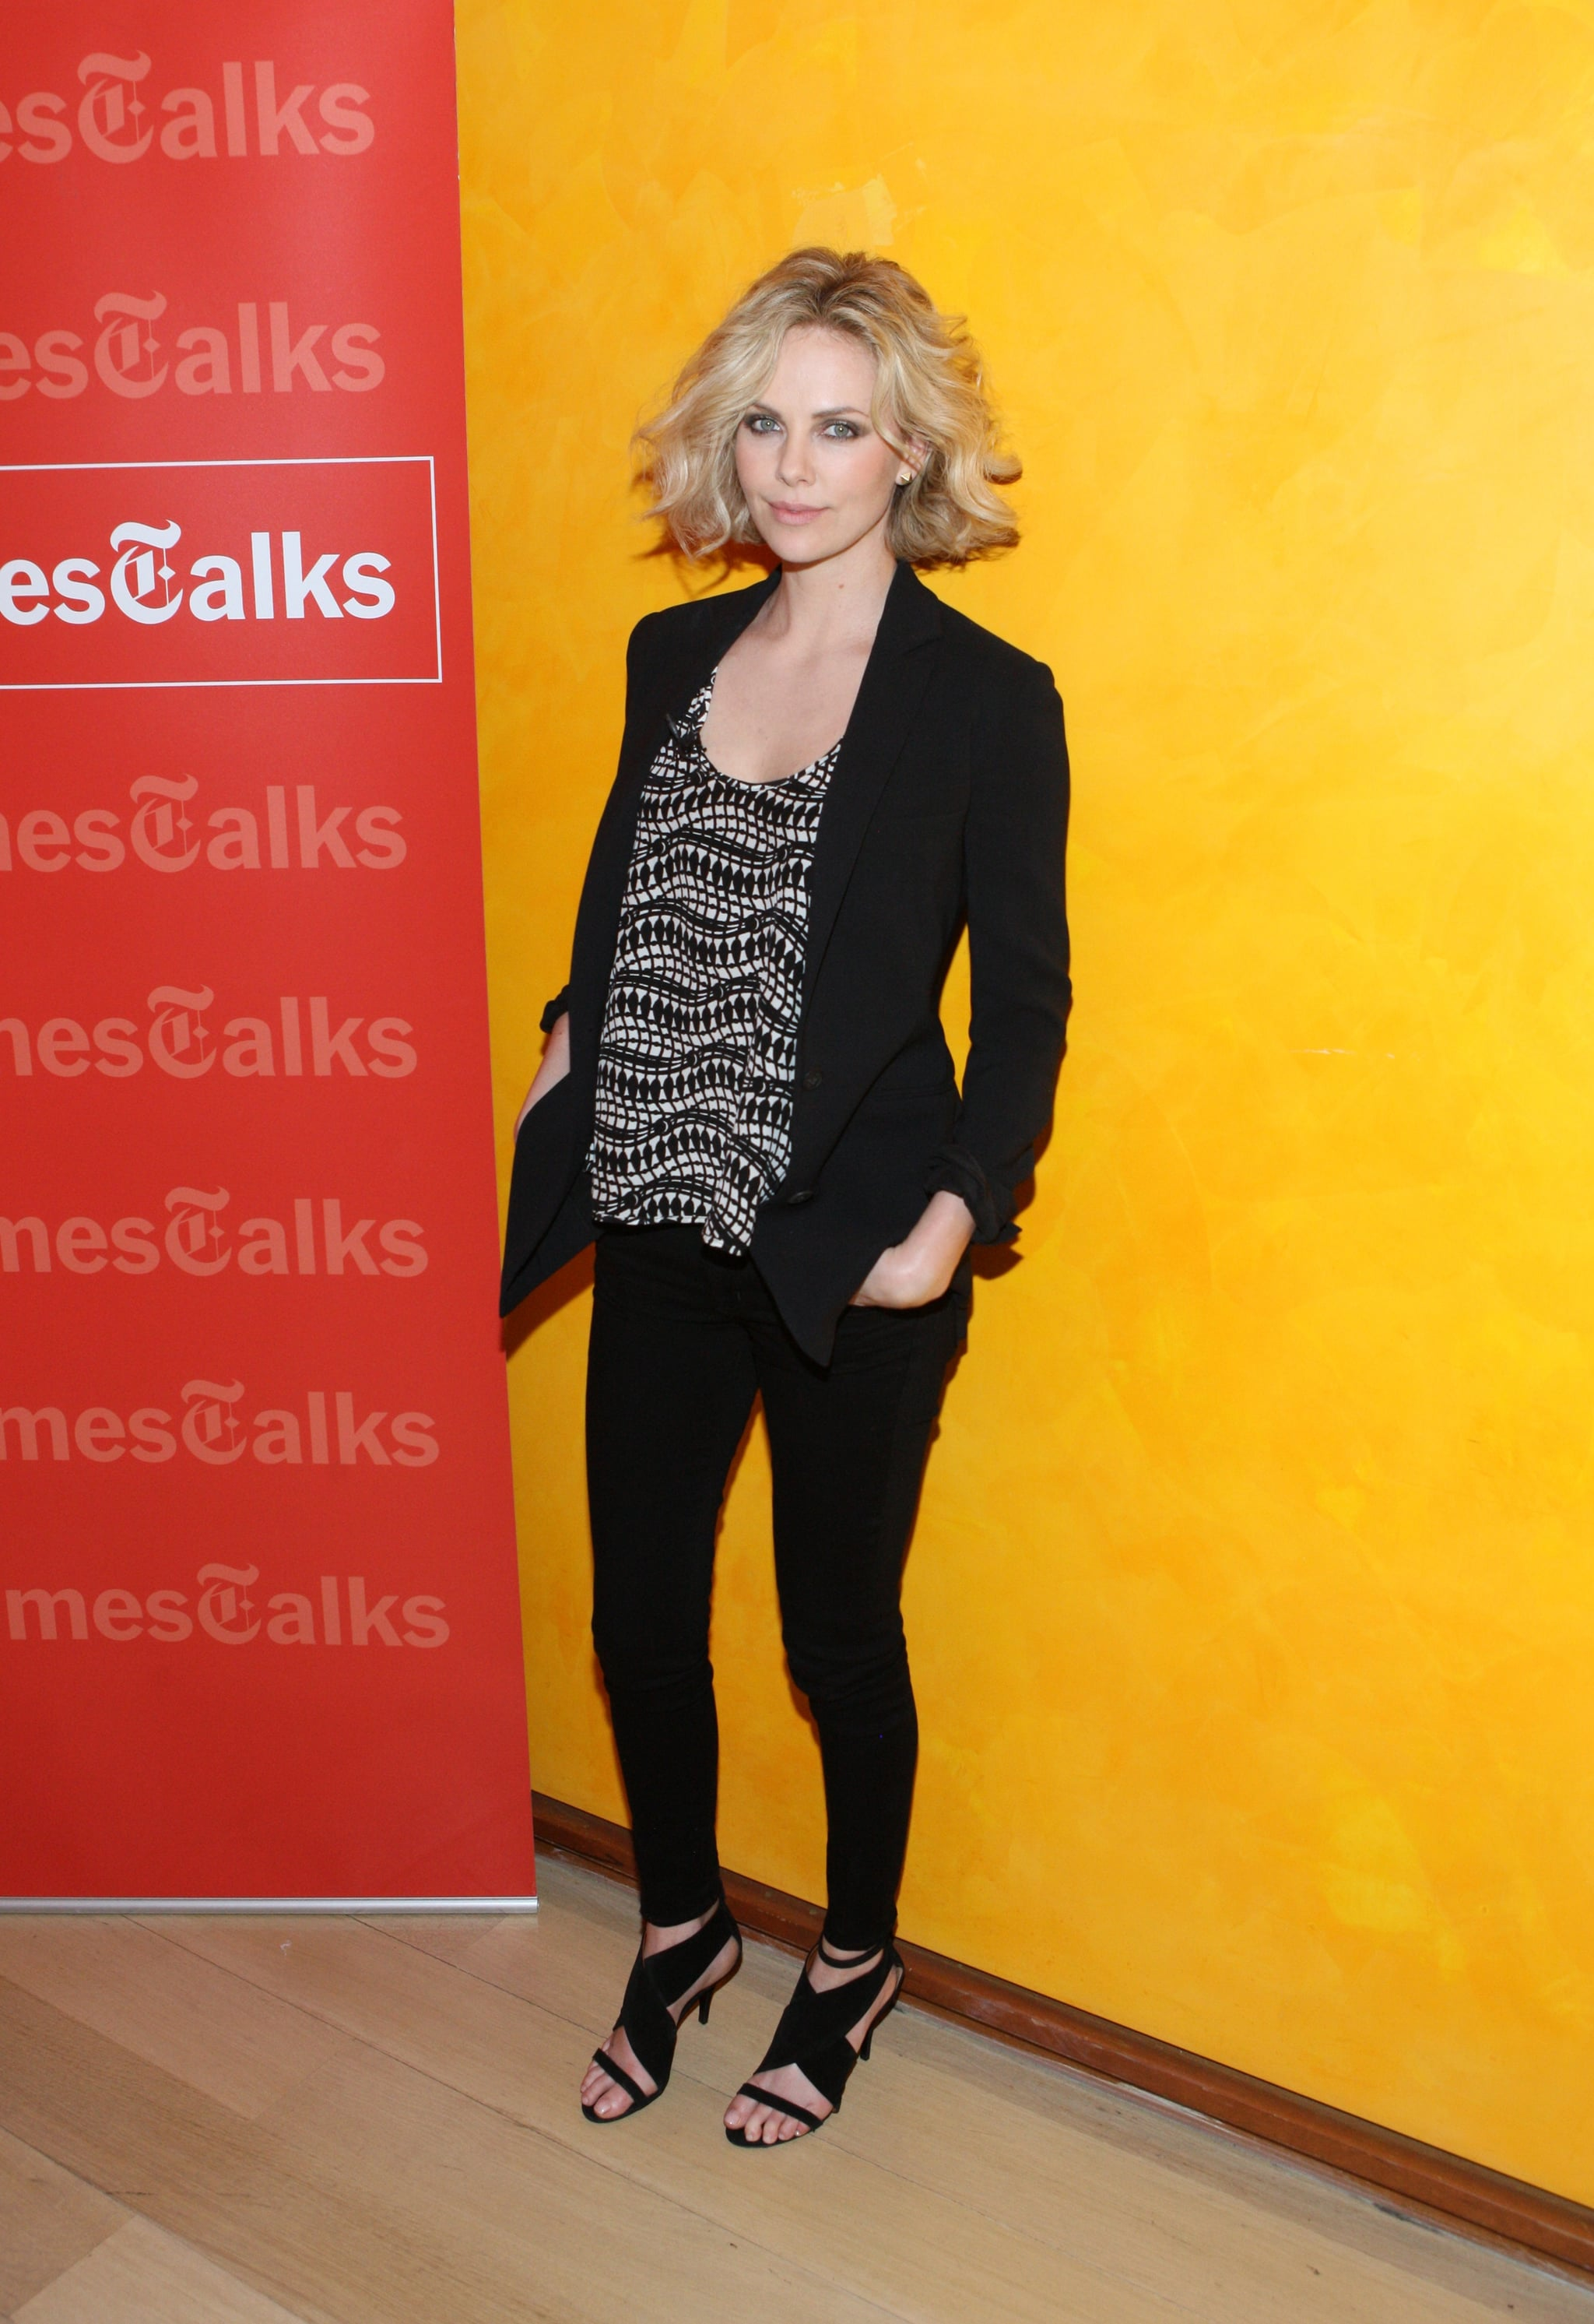 For a New York Times talk, Charlize wore a printed Thakoon top, Stella McCartney black blazer, and J Brand jeans.